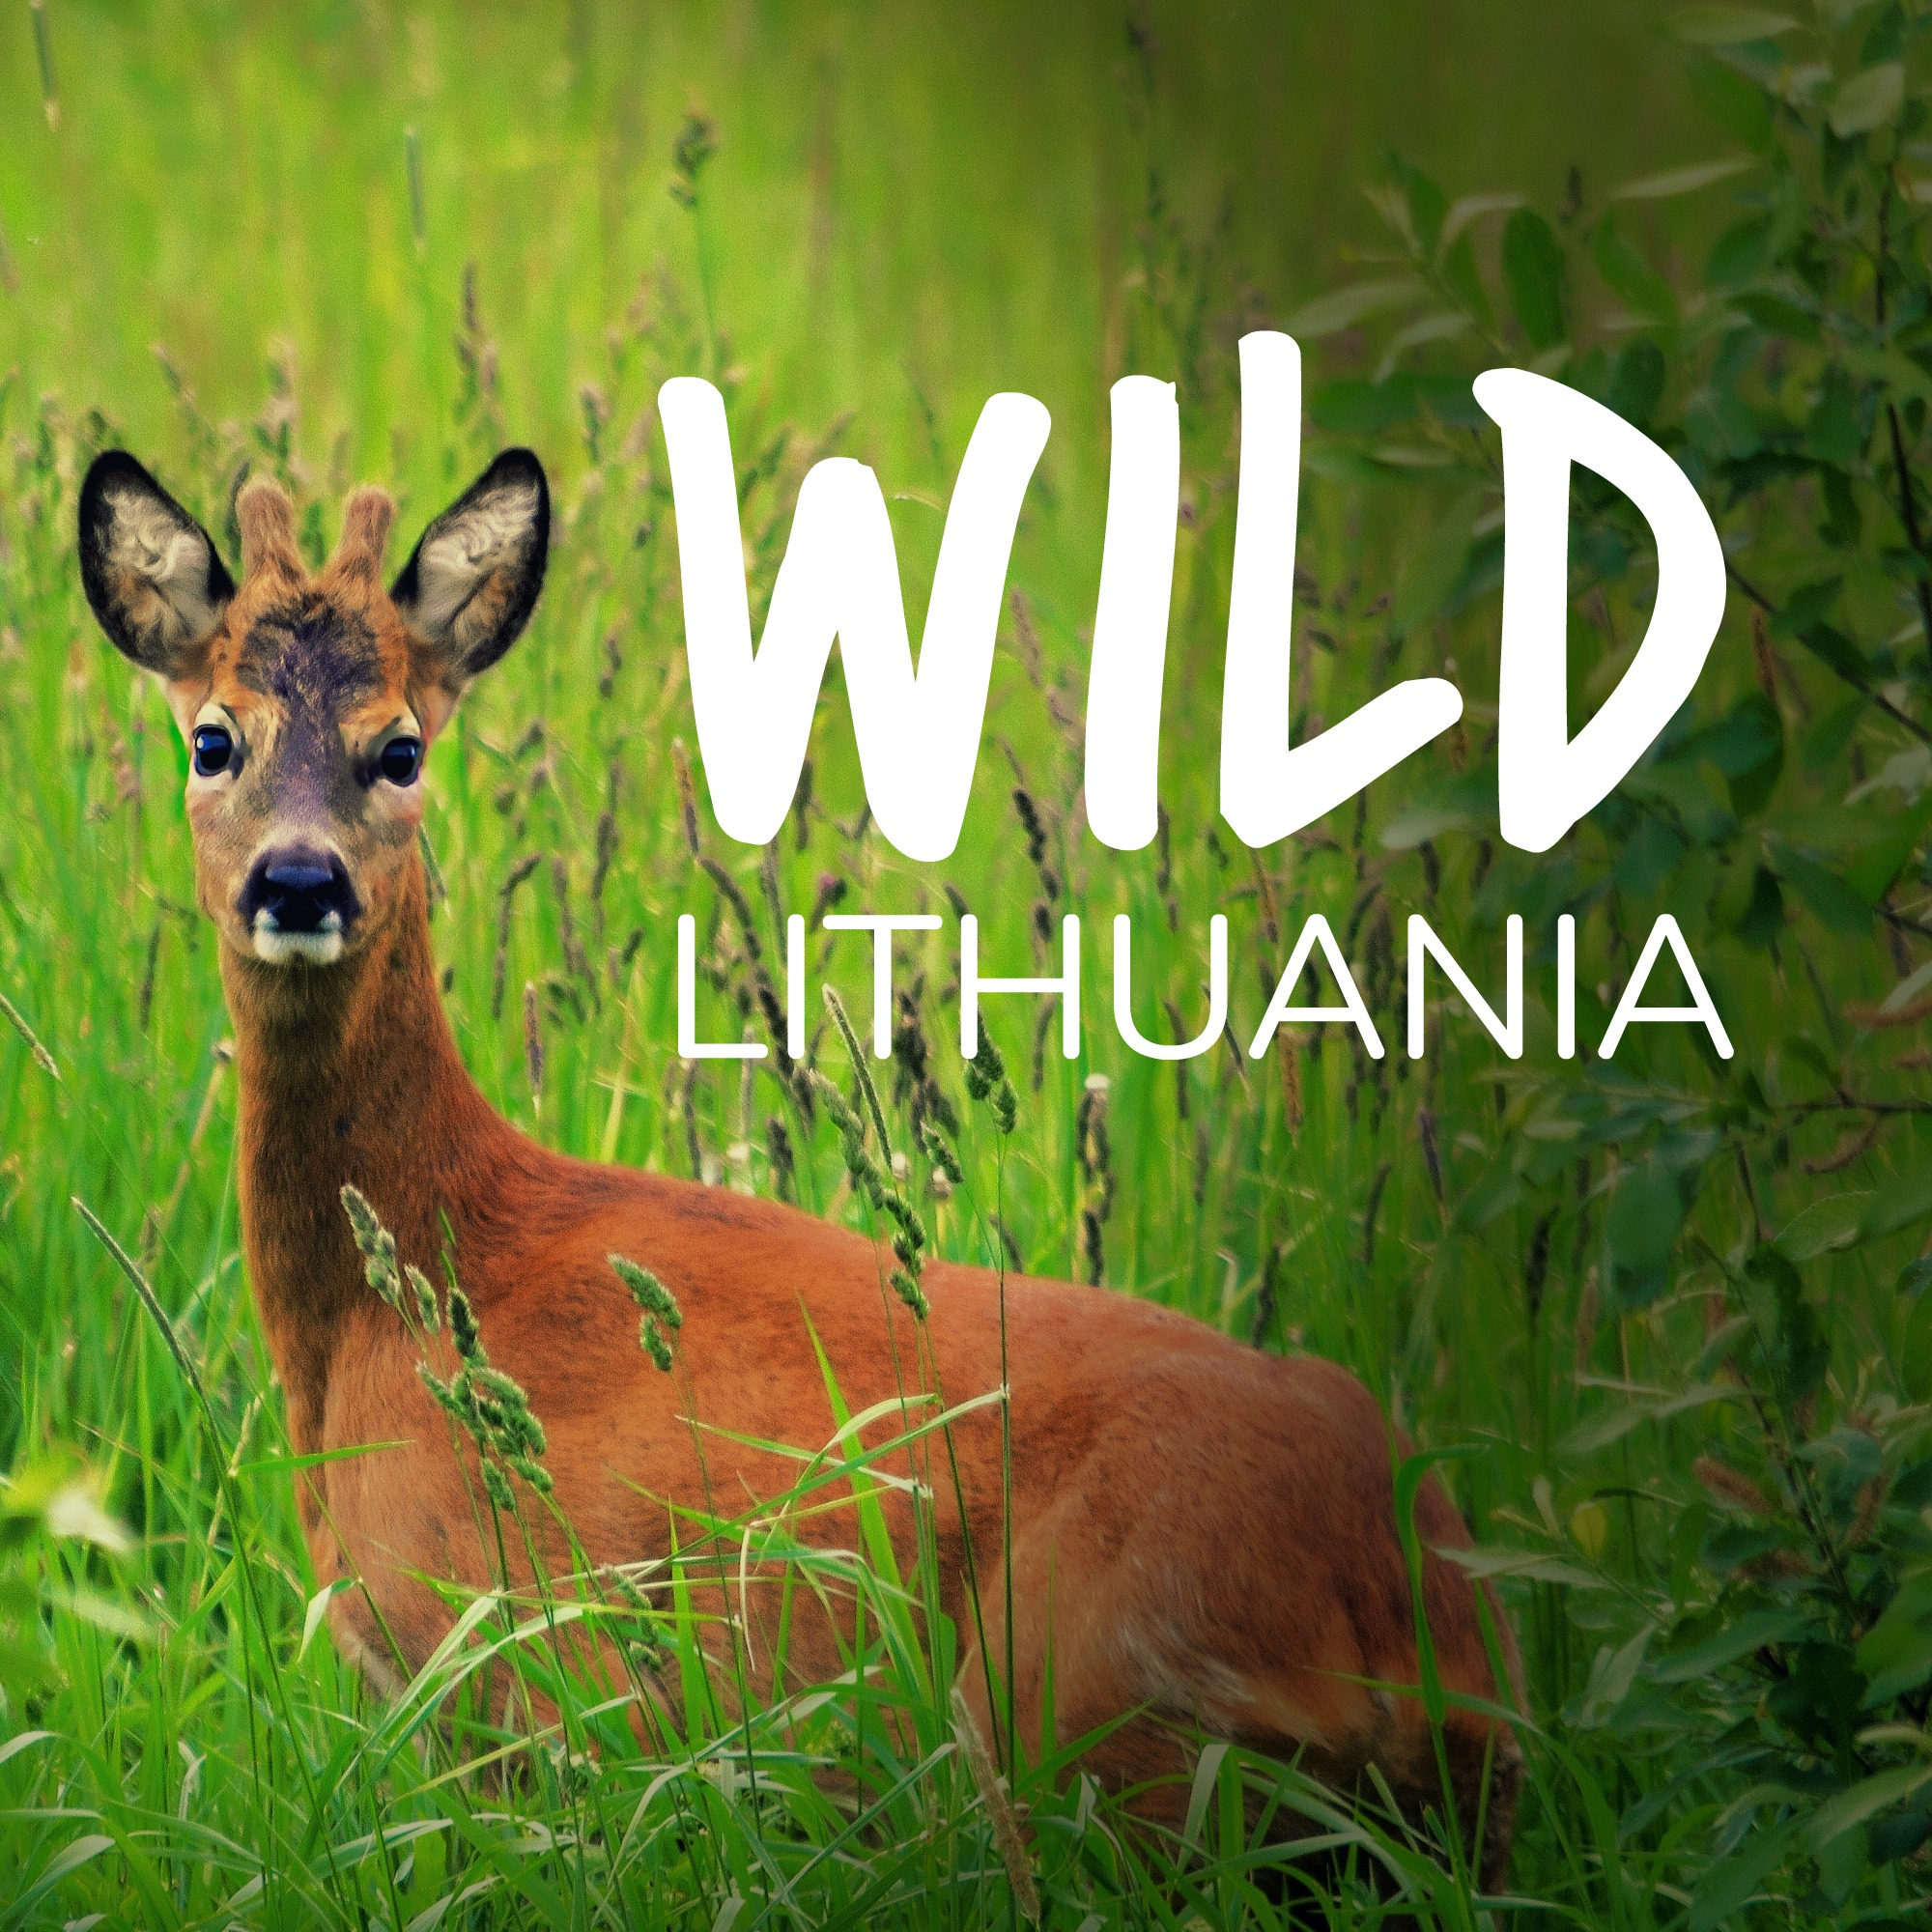 Wild Lithunania | www.wildlithuania.com